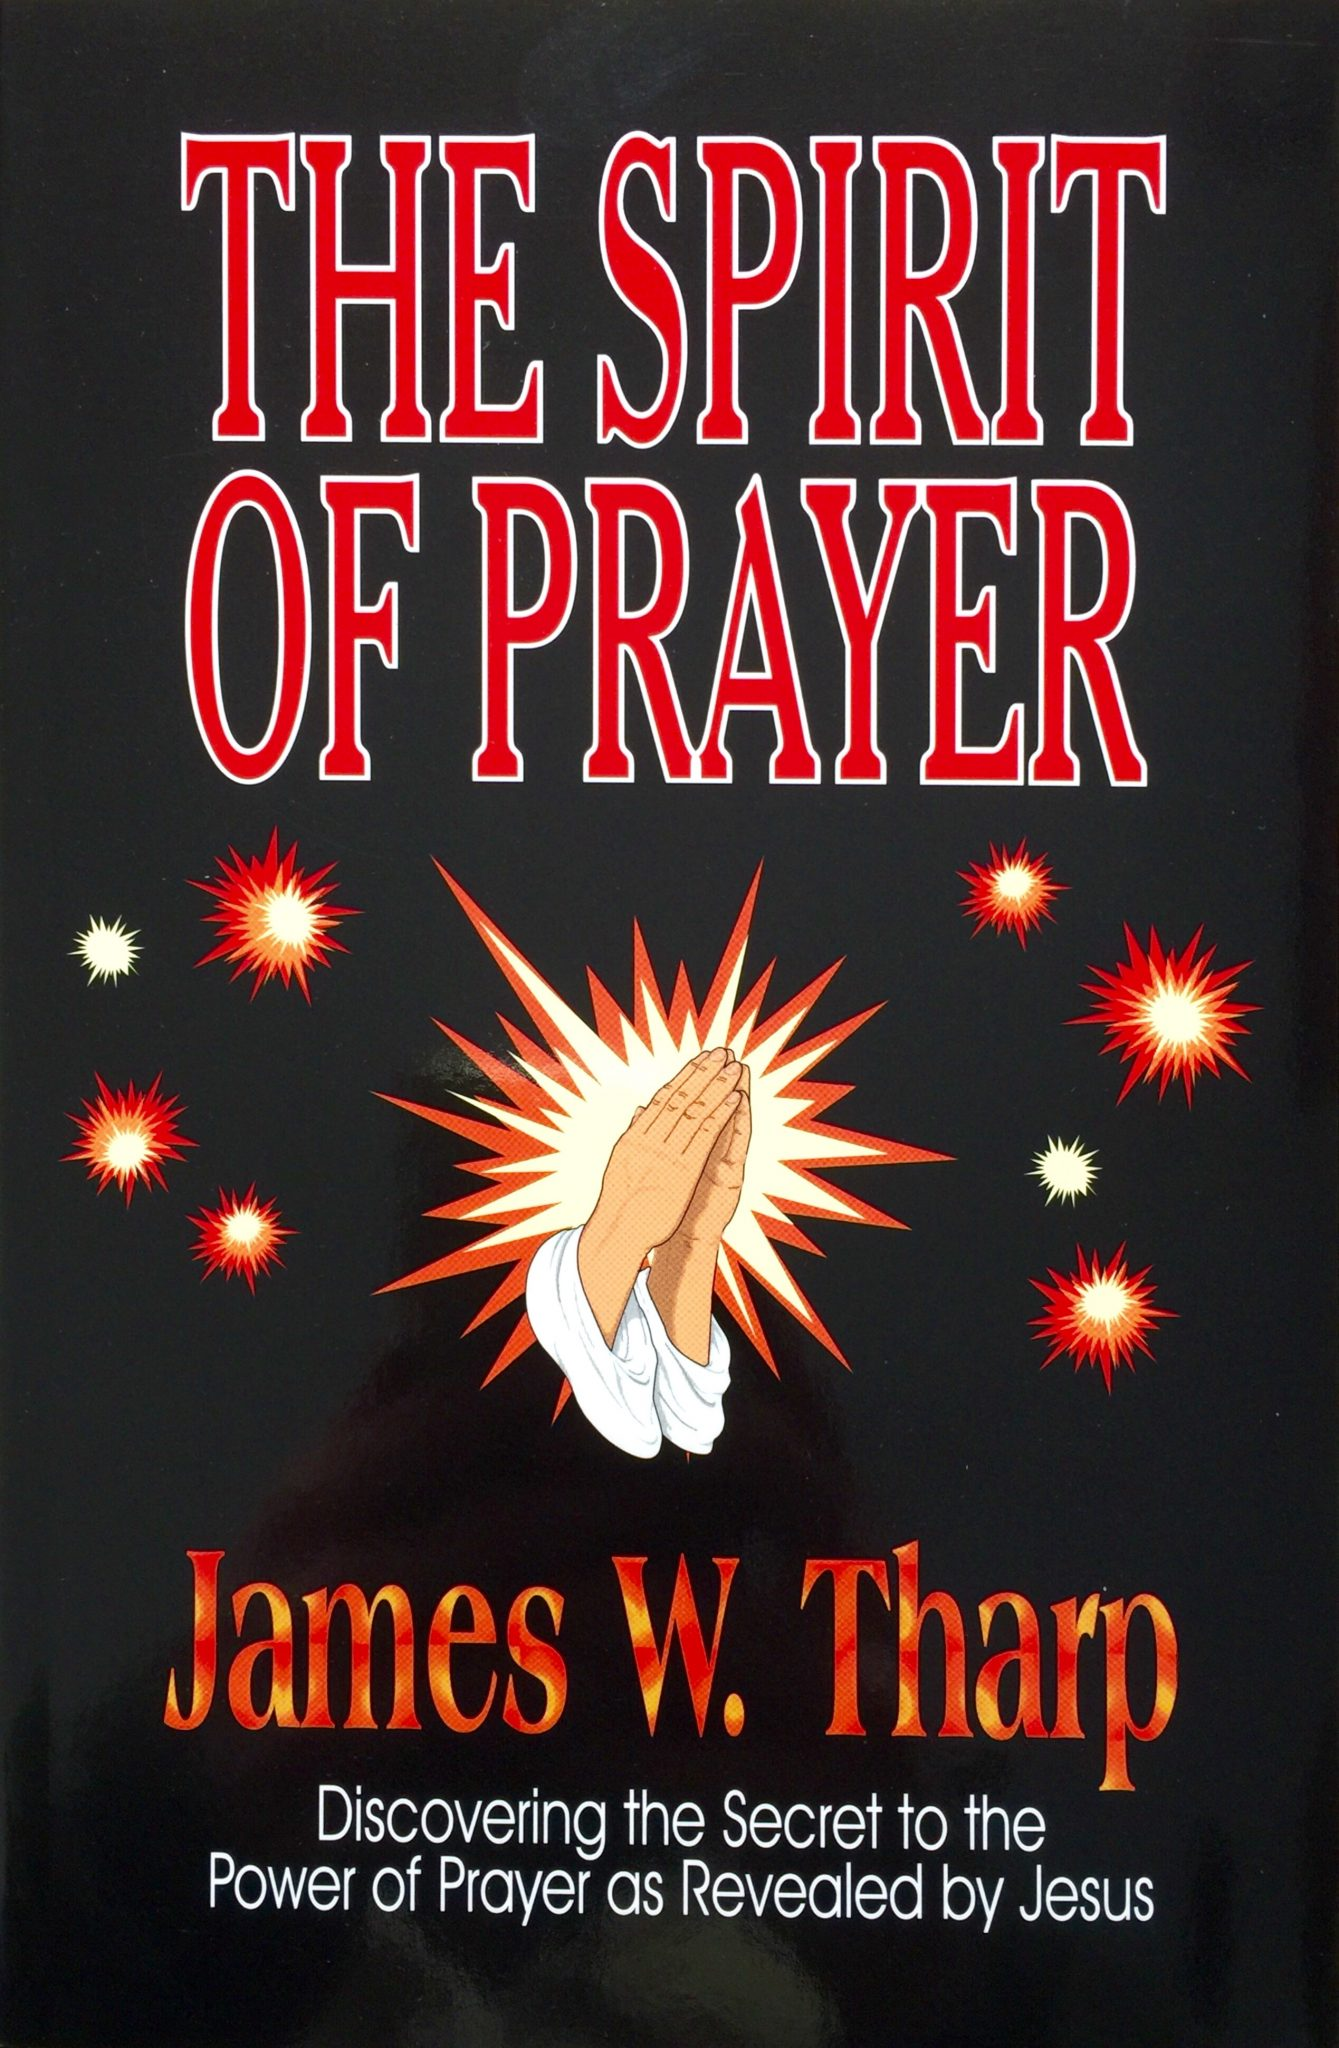 The Spirit of Power book by Rev. James W Tharp